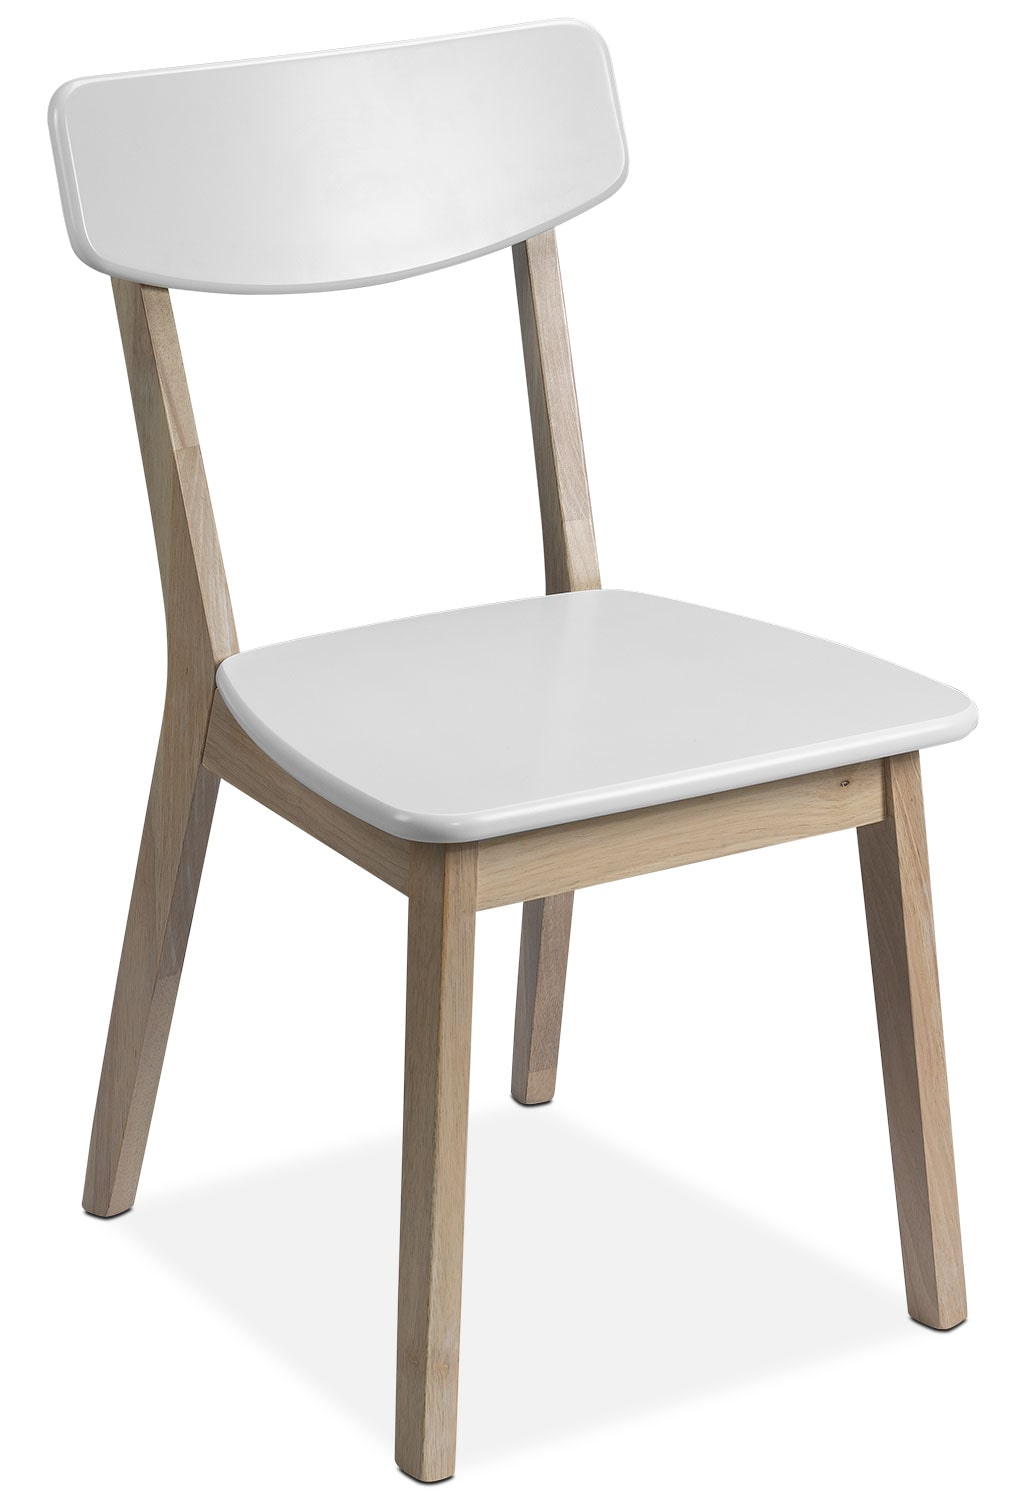 Vivien Side Chair - White